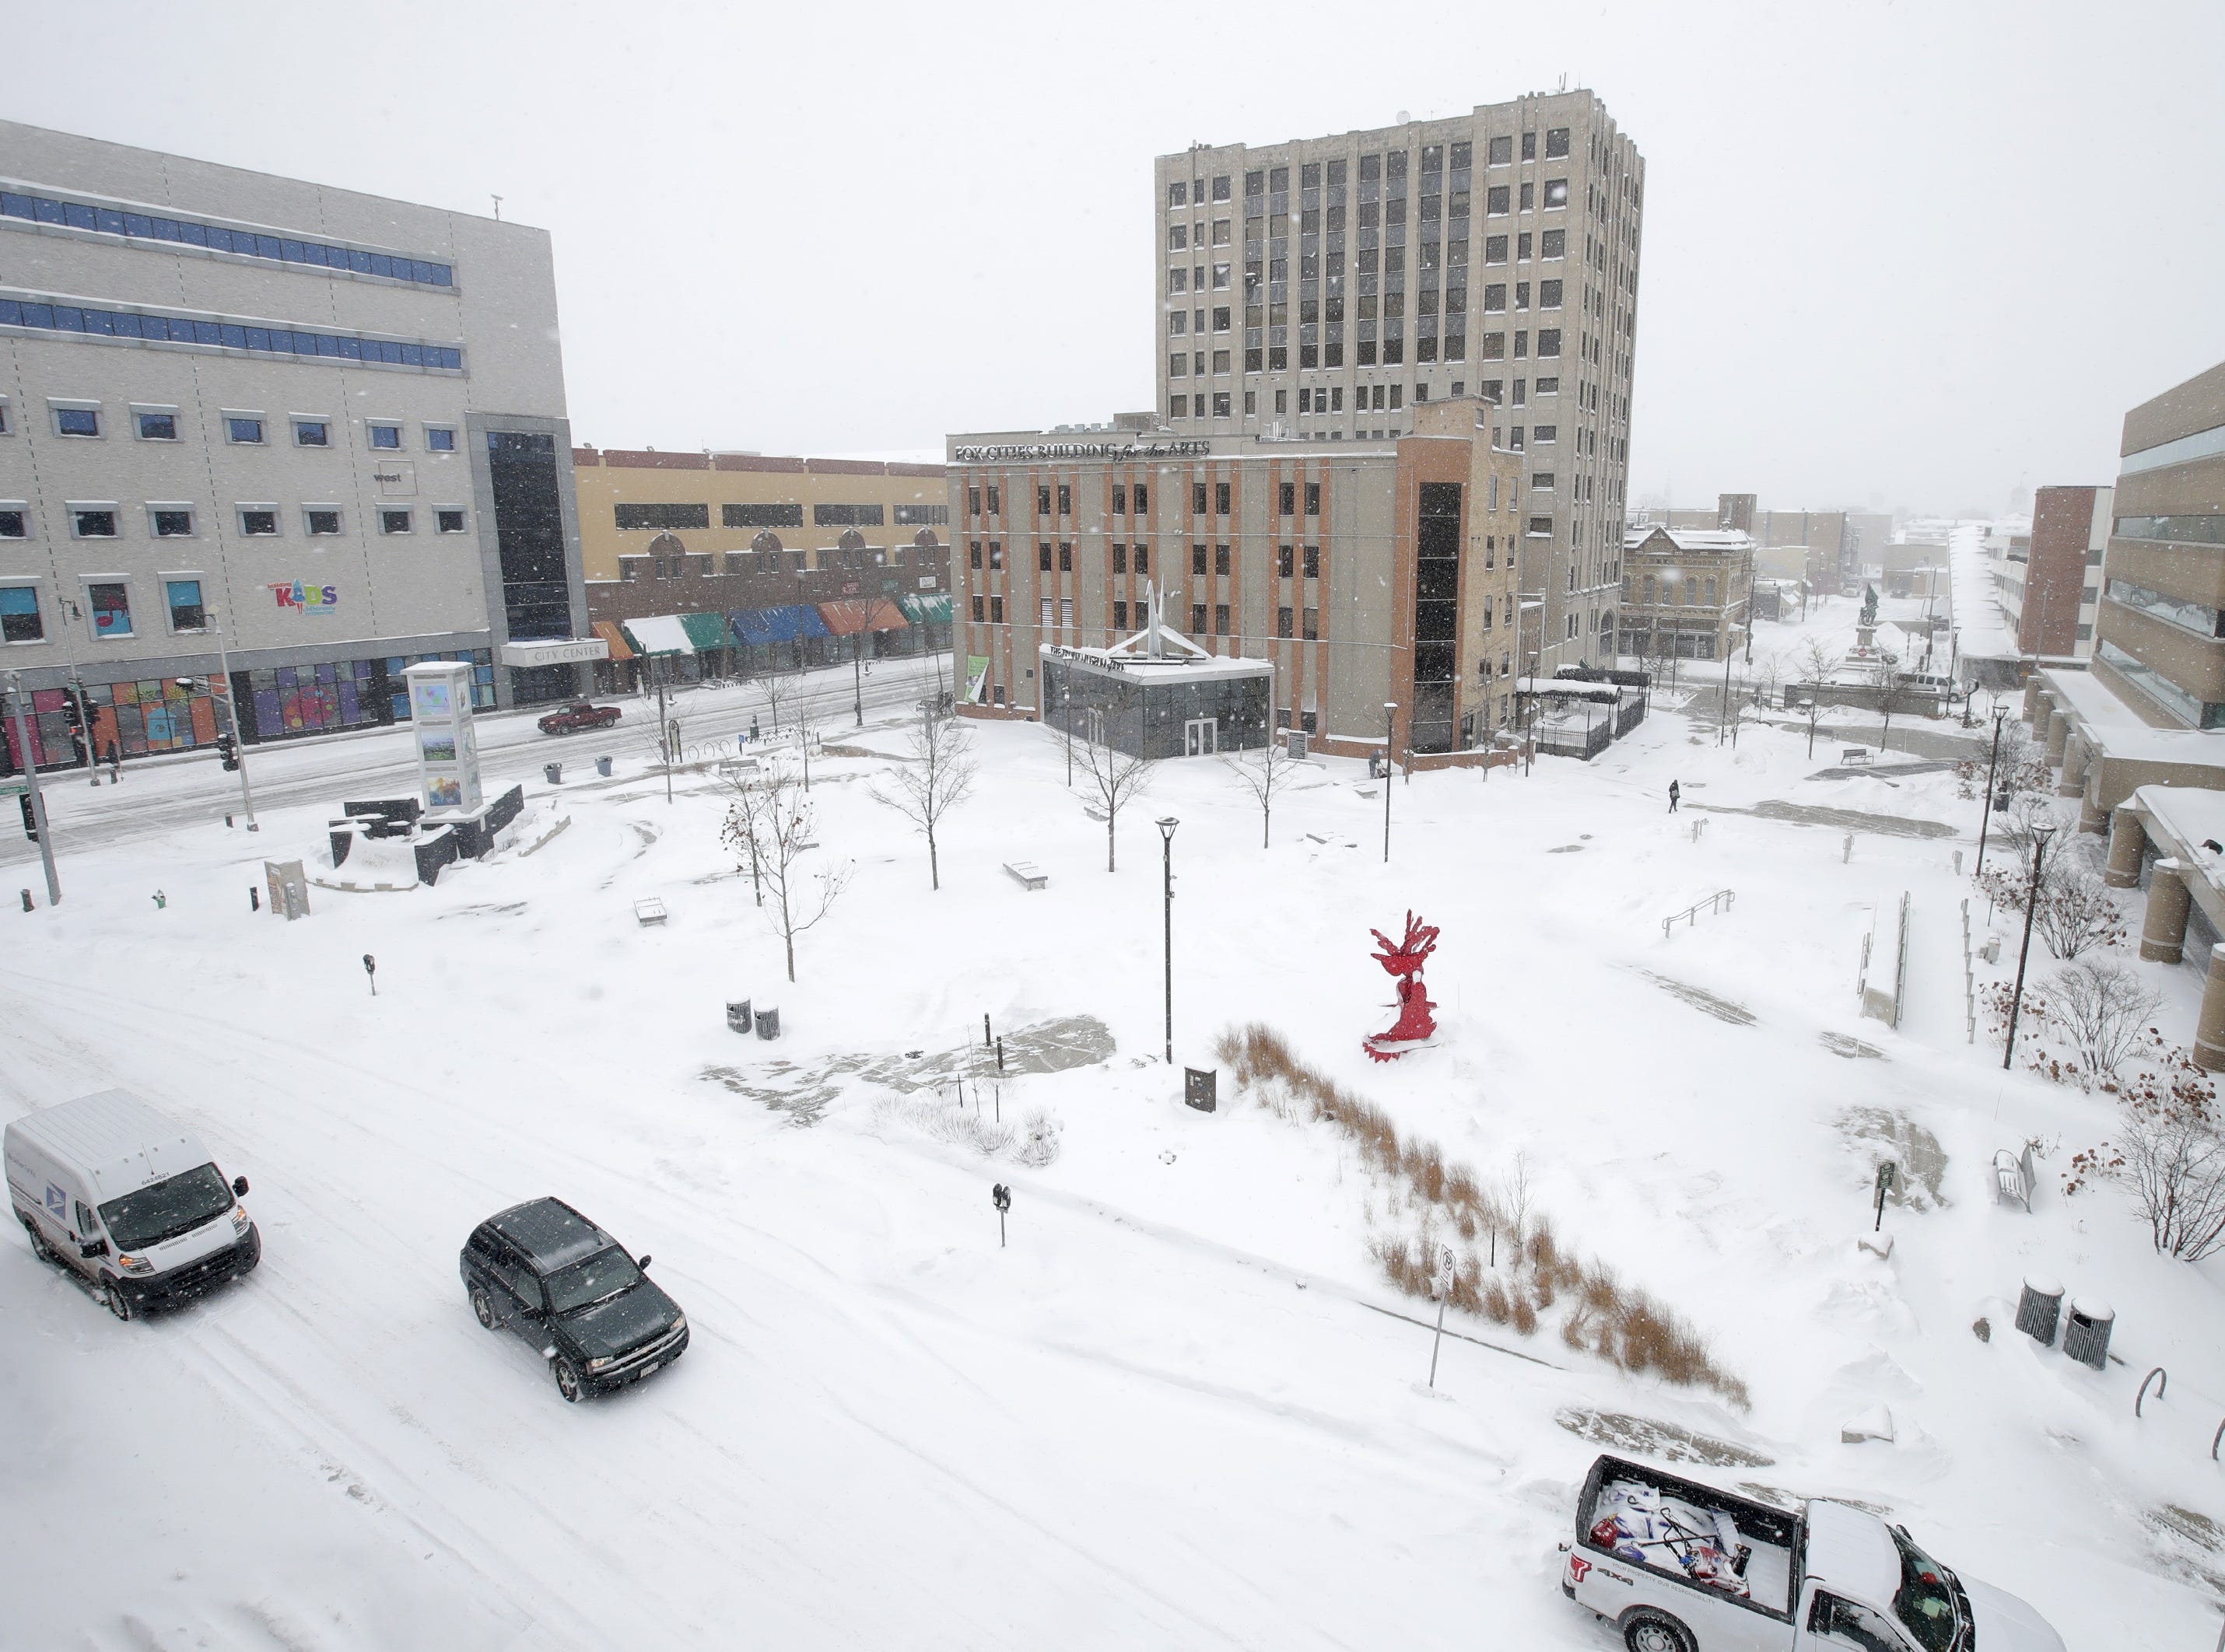 Houdini Plaza during the snowstorm that hit the area Monday, Jan. 28, 2019, in Appleton, Wis.